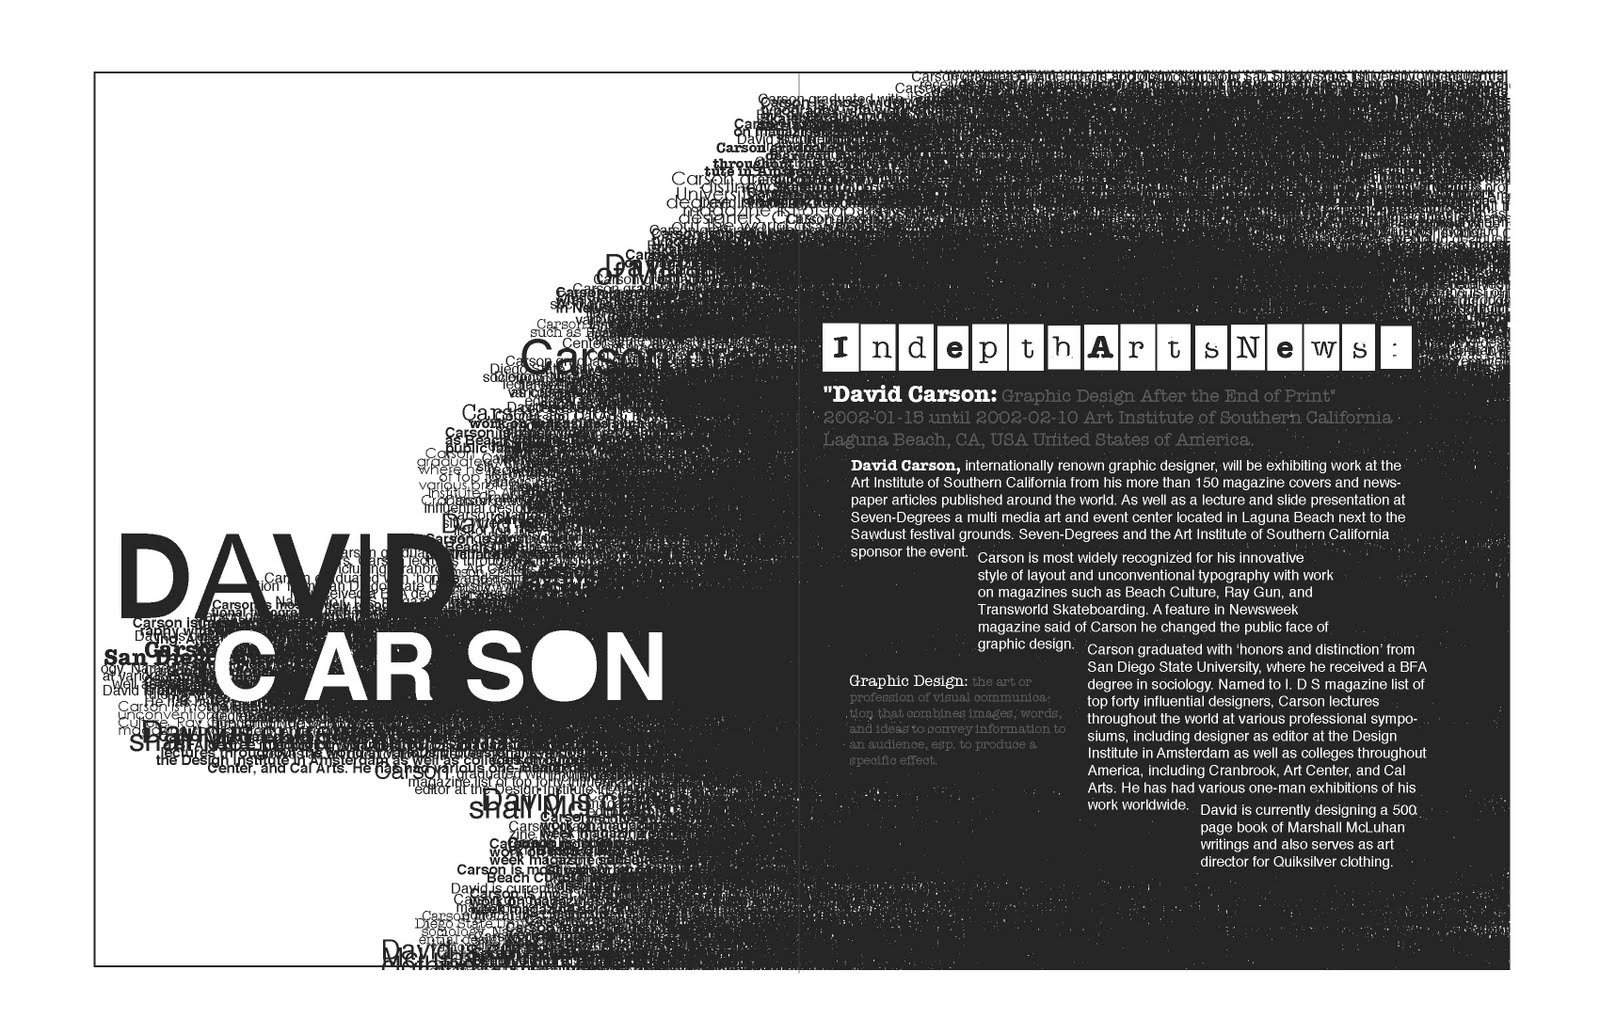 Magazine Spread about David Carson